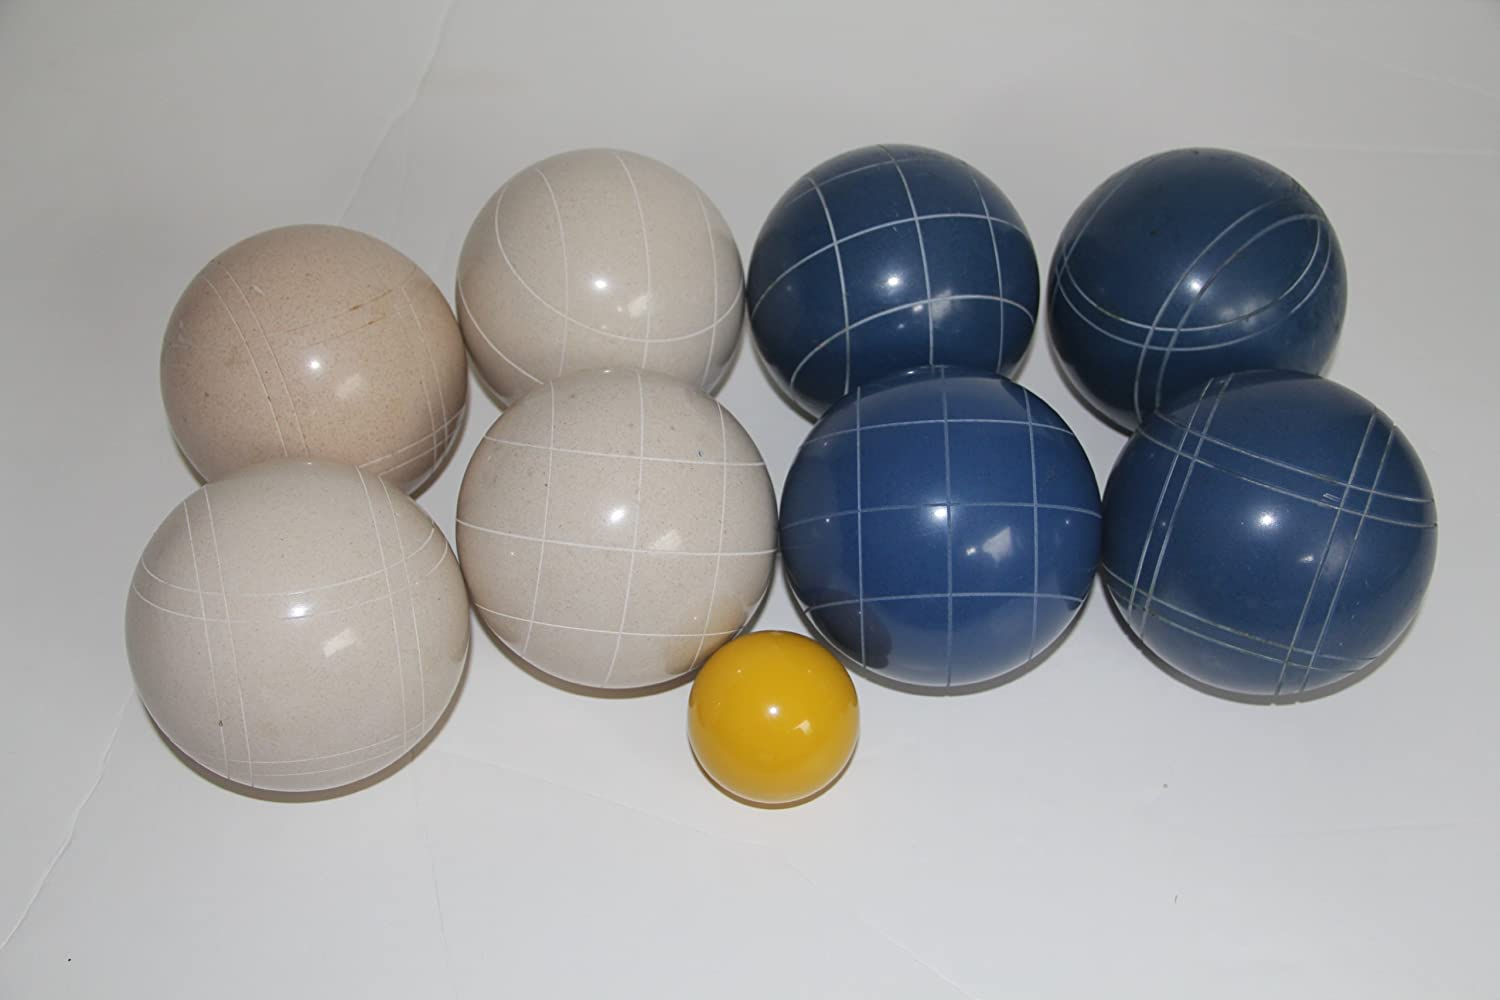 Premium Quality EPCO Tournament Bocce Set – 107mm Blue and White Bocce Balls … bestellen